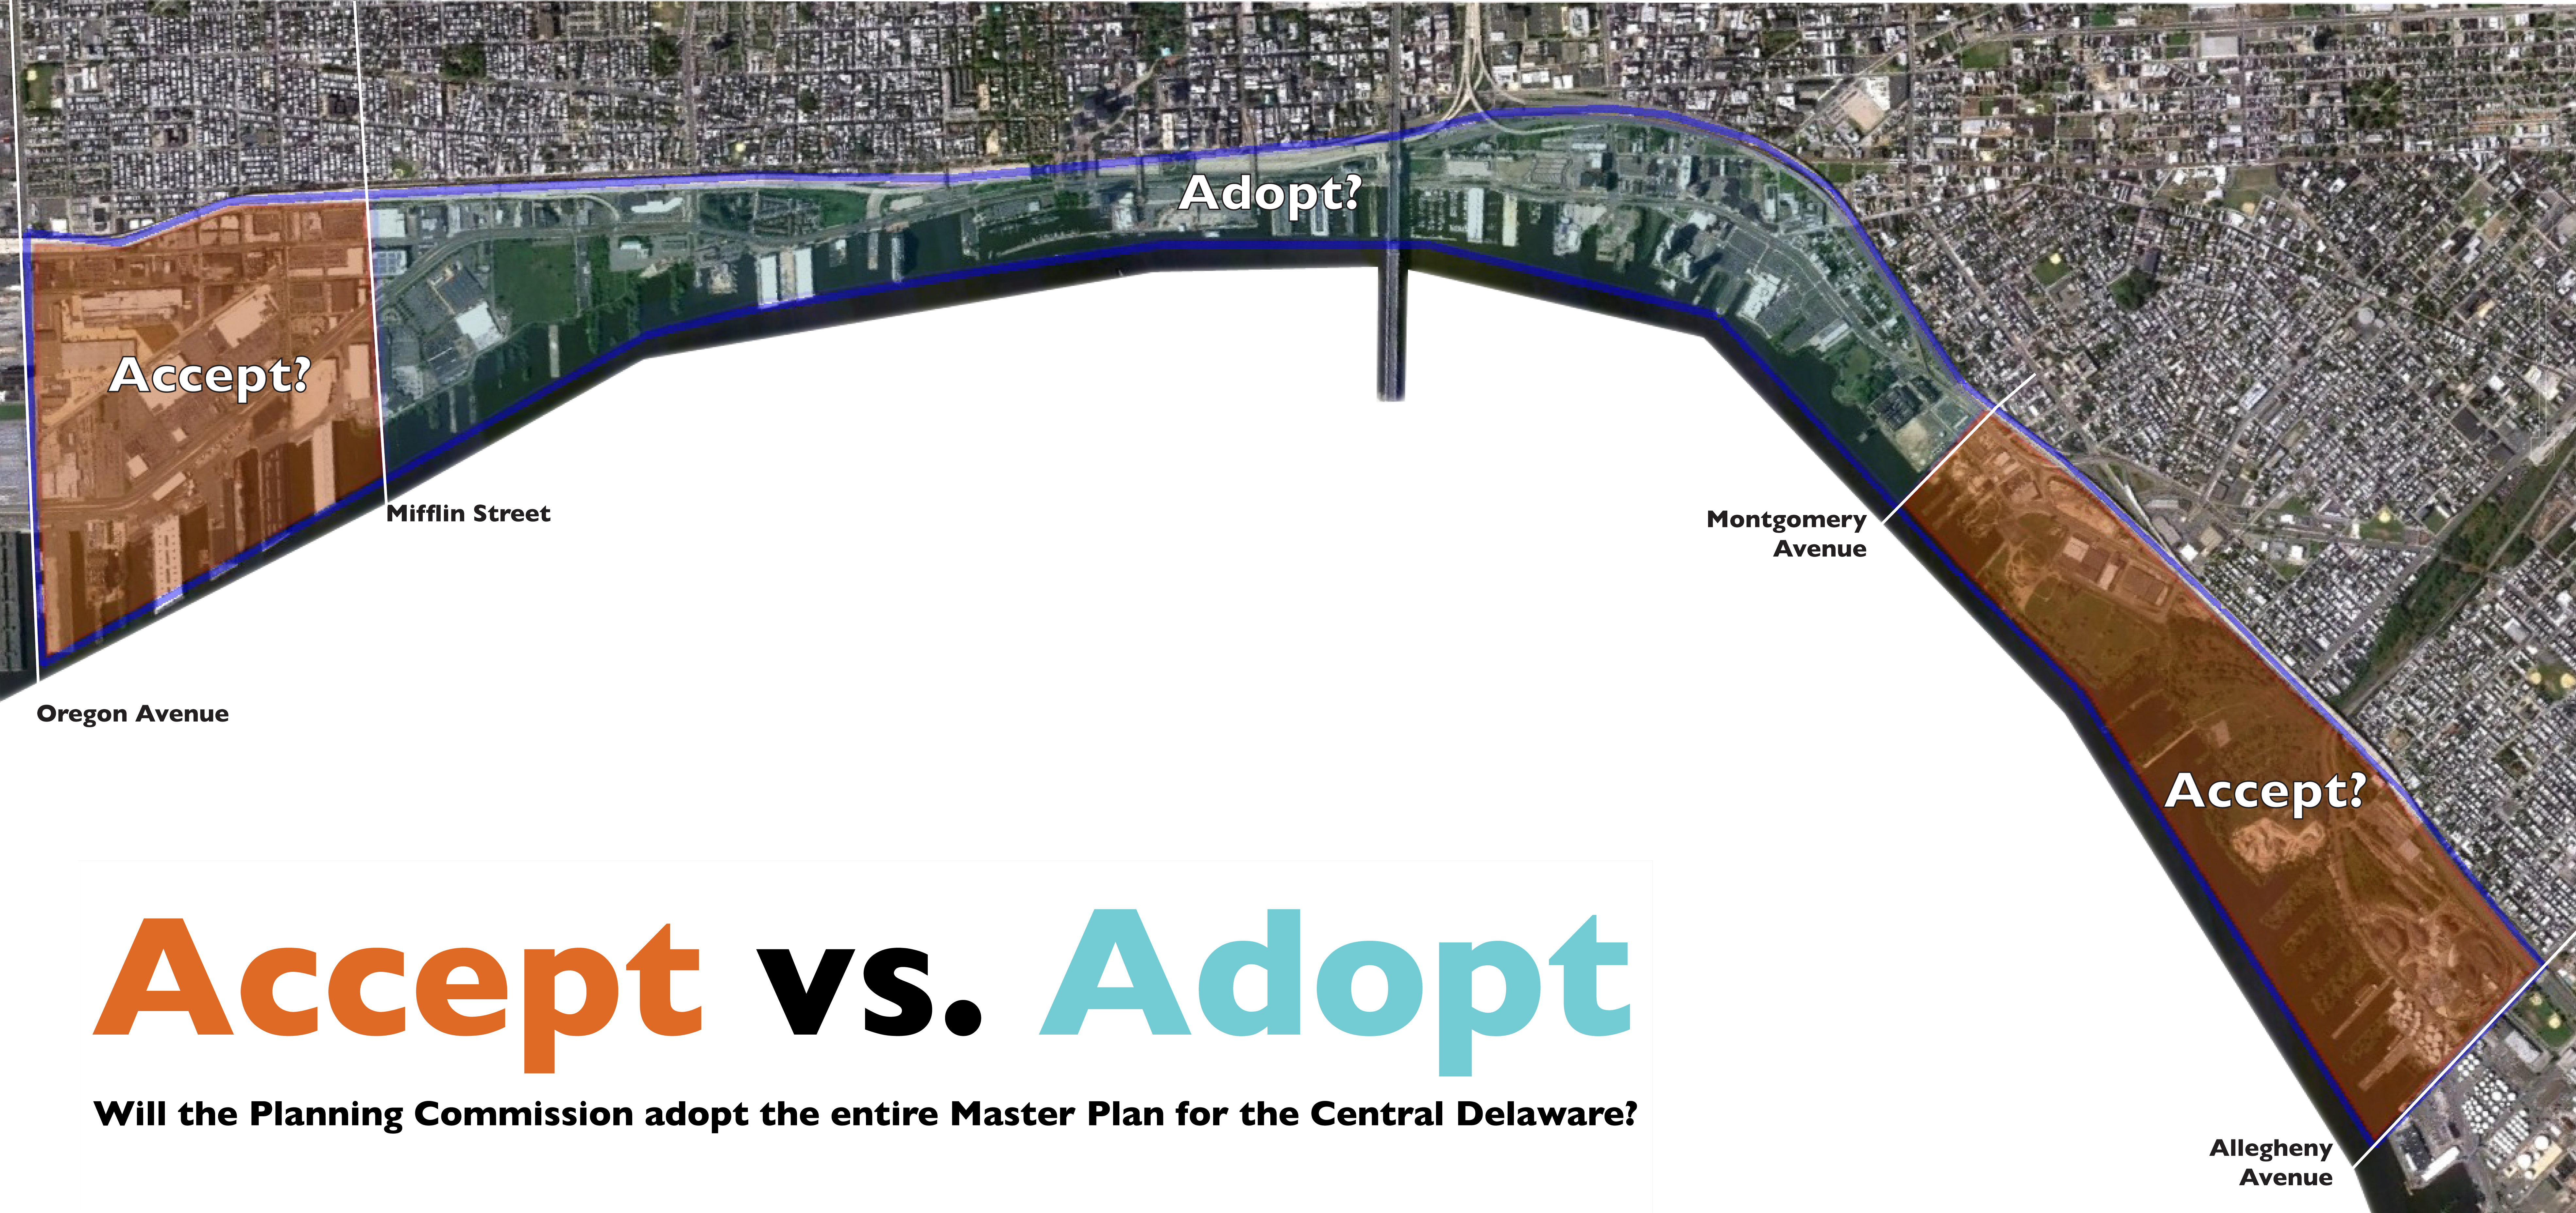 Just a piece of work? City Planning still deciding whether to endorse adoption of entire waterfront plan